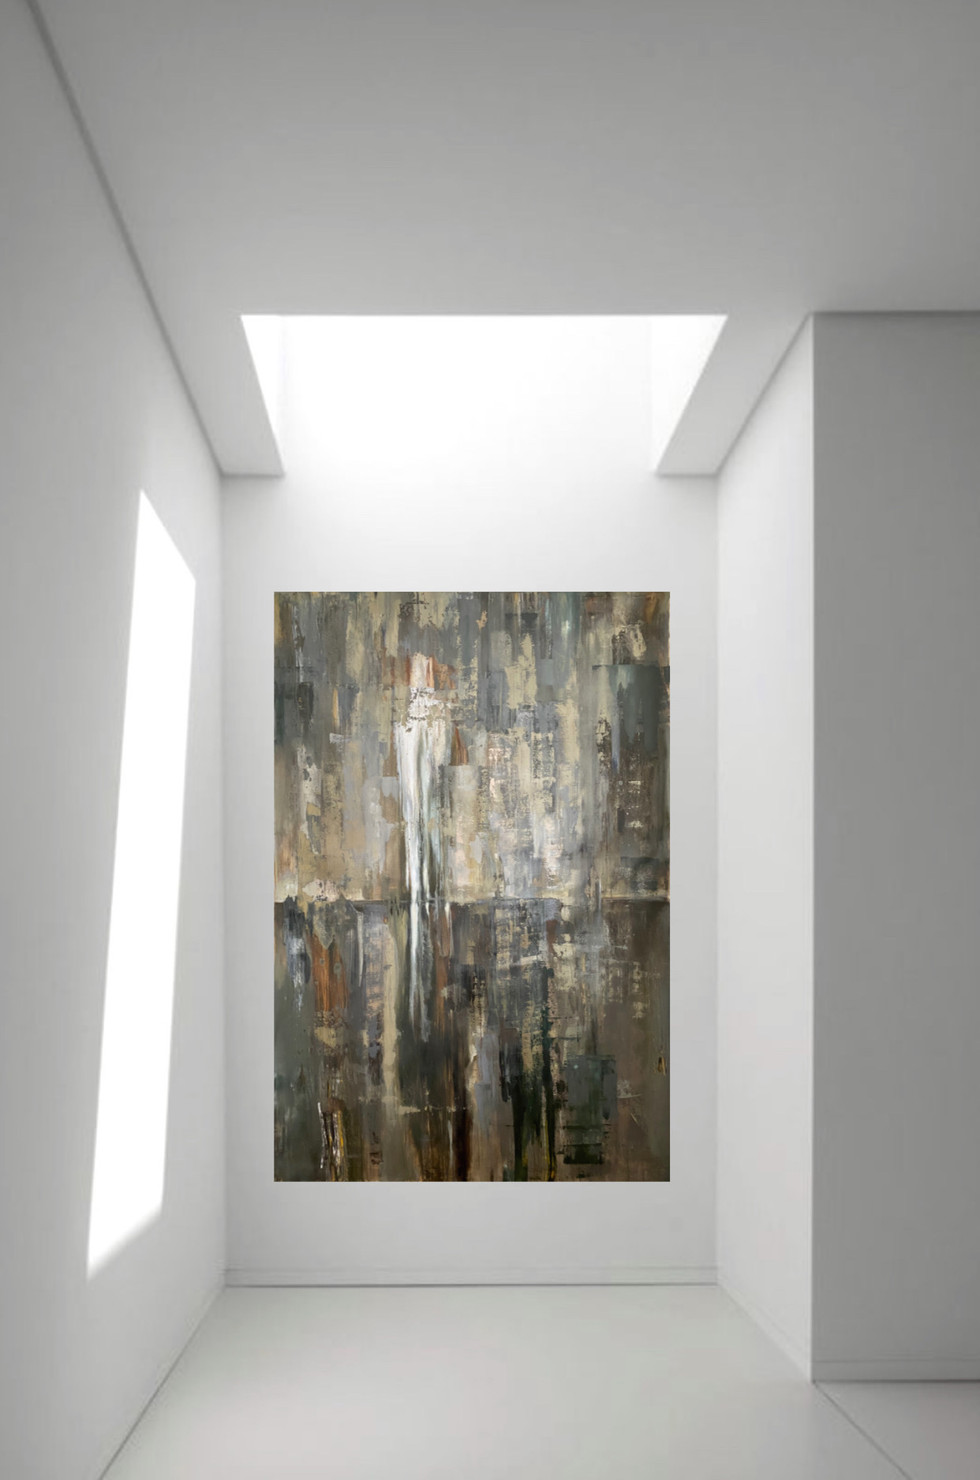 The Wall #1, 48x72inch, view 2.jpg